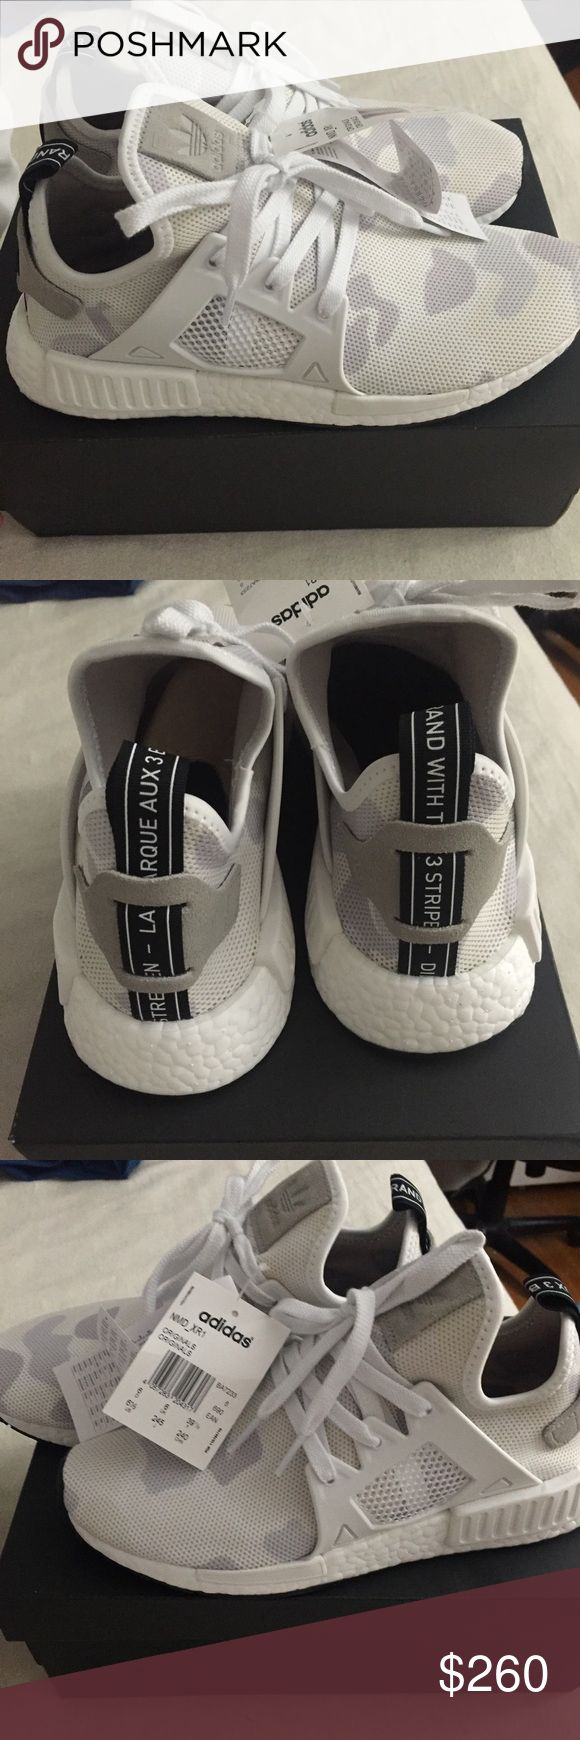 Adidas NMD XR1 Rare color Adidas Nmd pastel camo R1. Brand new never been worn! Size Women6.5/men5.5 . This runs half size large , if you usually wear sneakers size 7. This is the right size for you . Adidas Shoes Sneakers